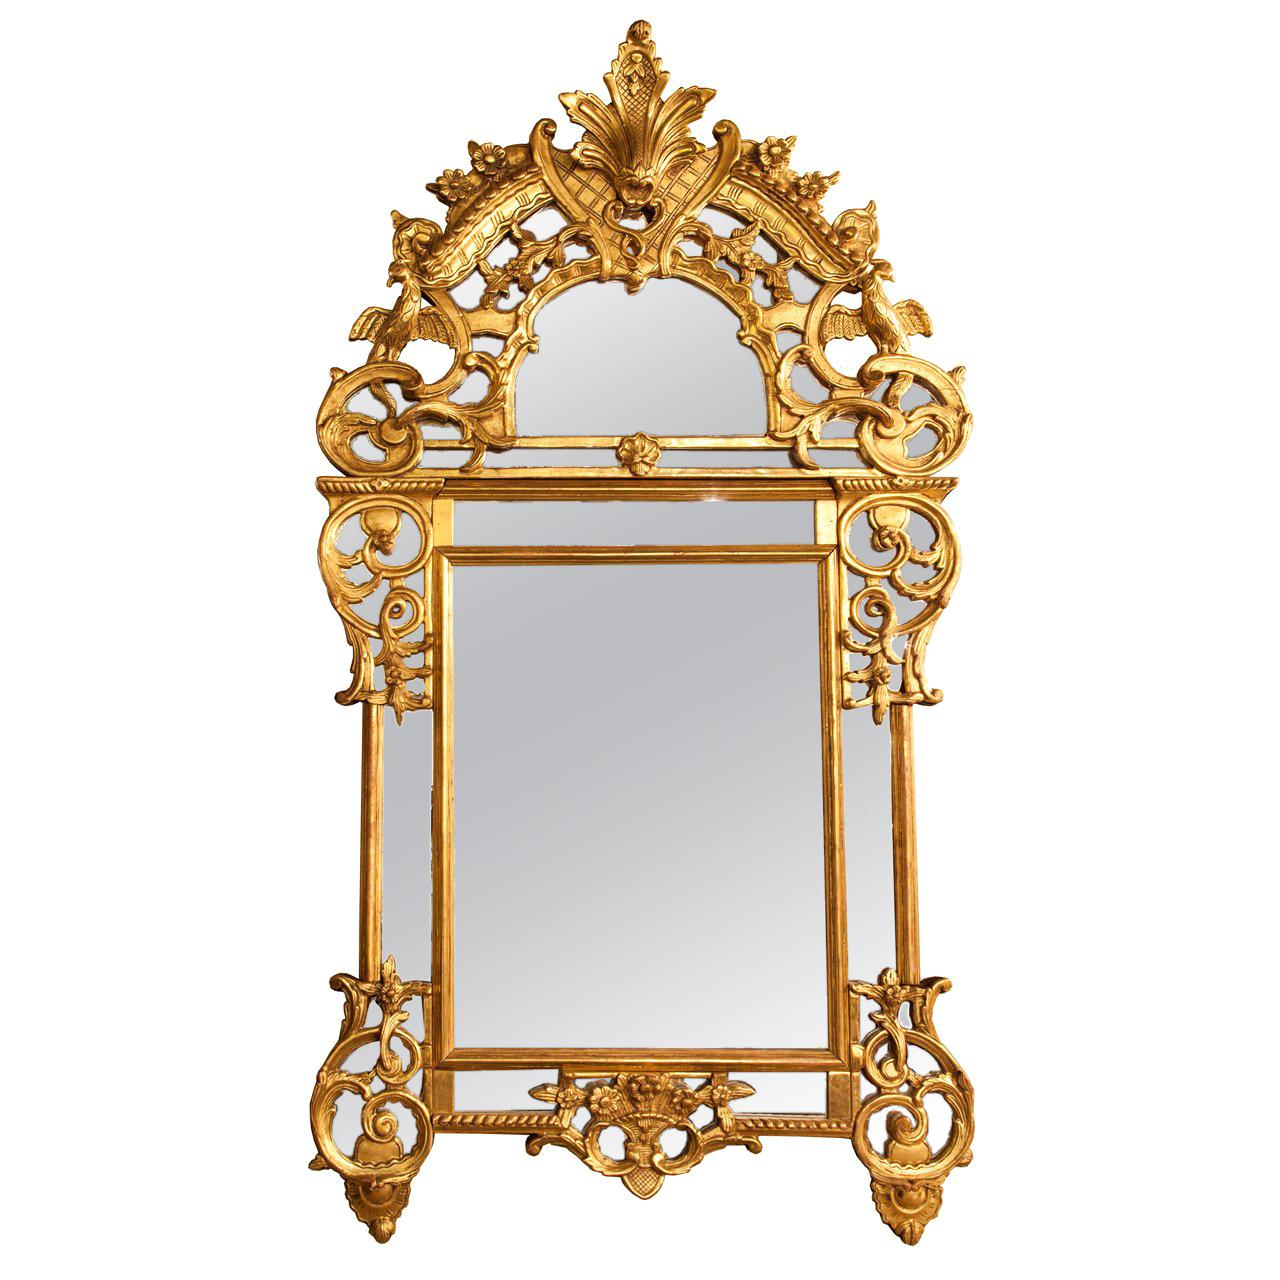 French 19th c regence  style giltwood reticulated footed mirror